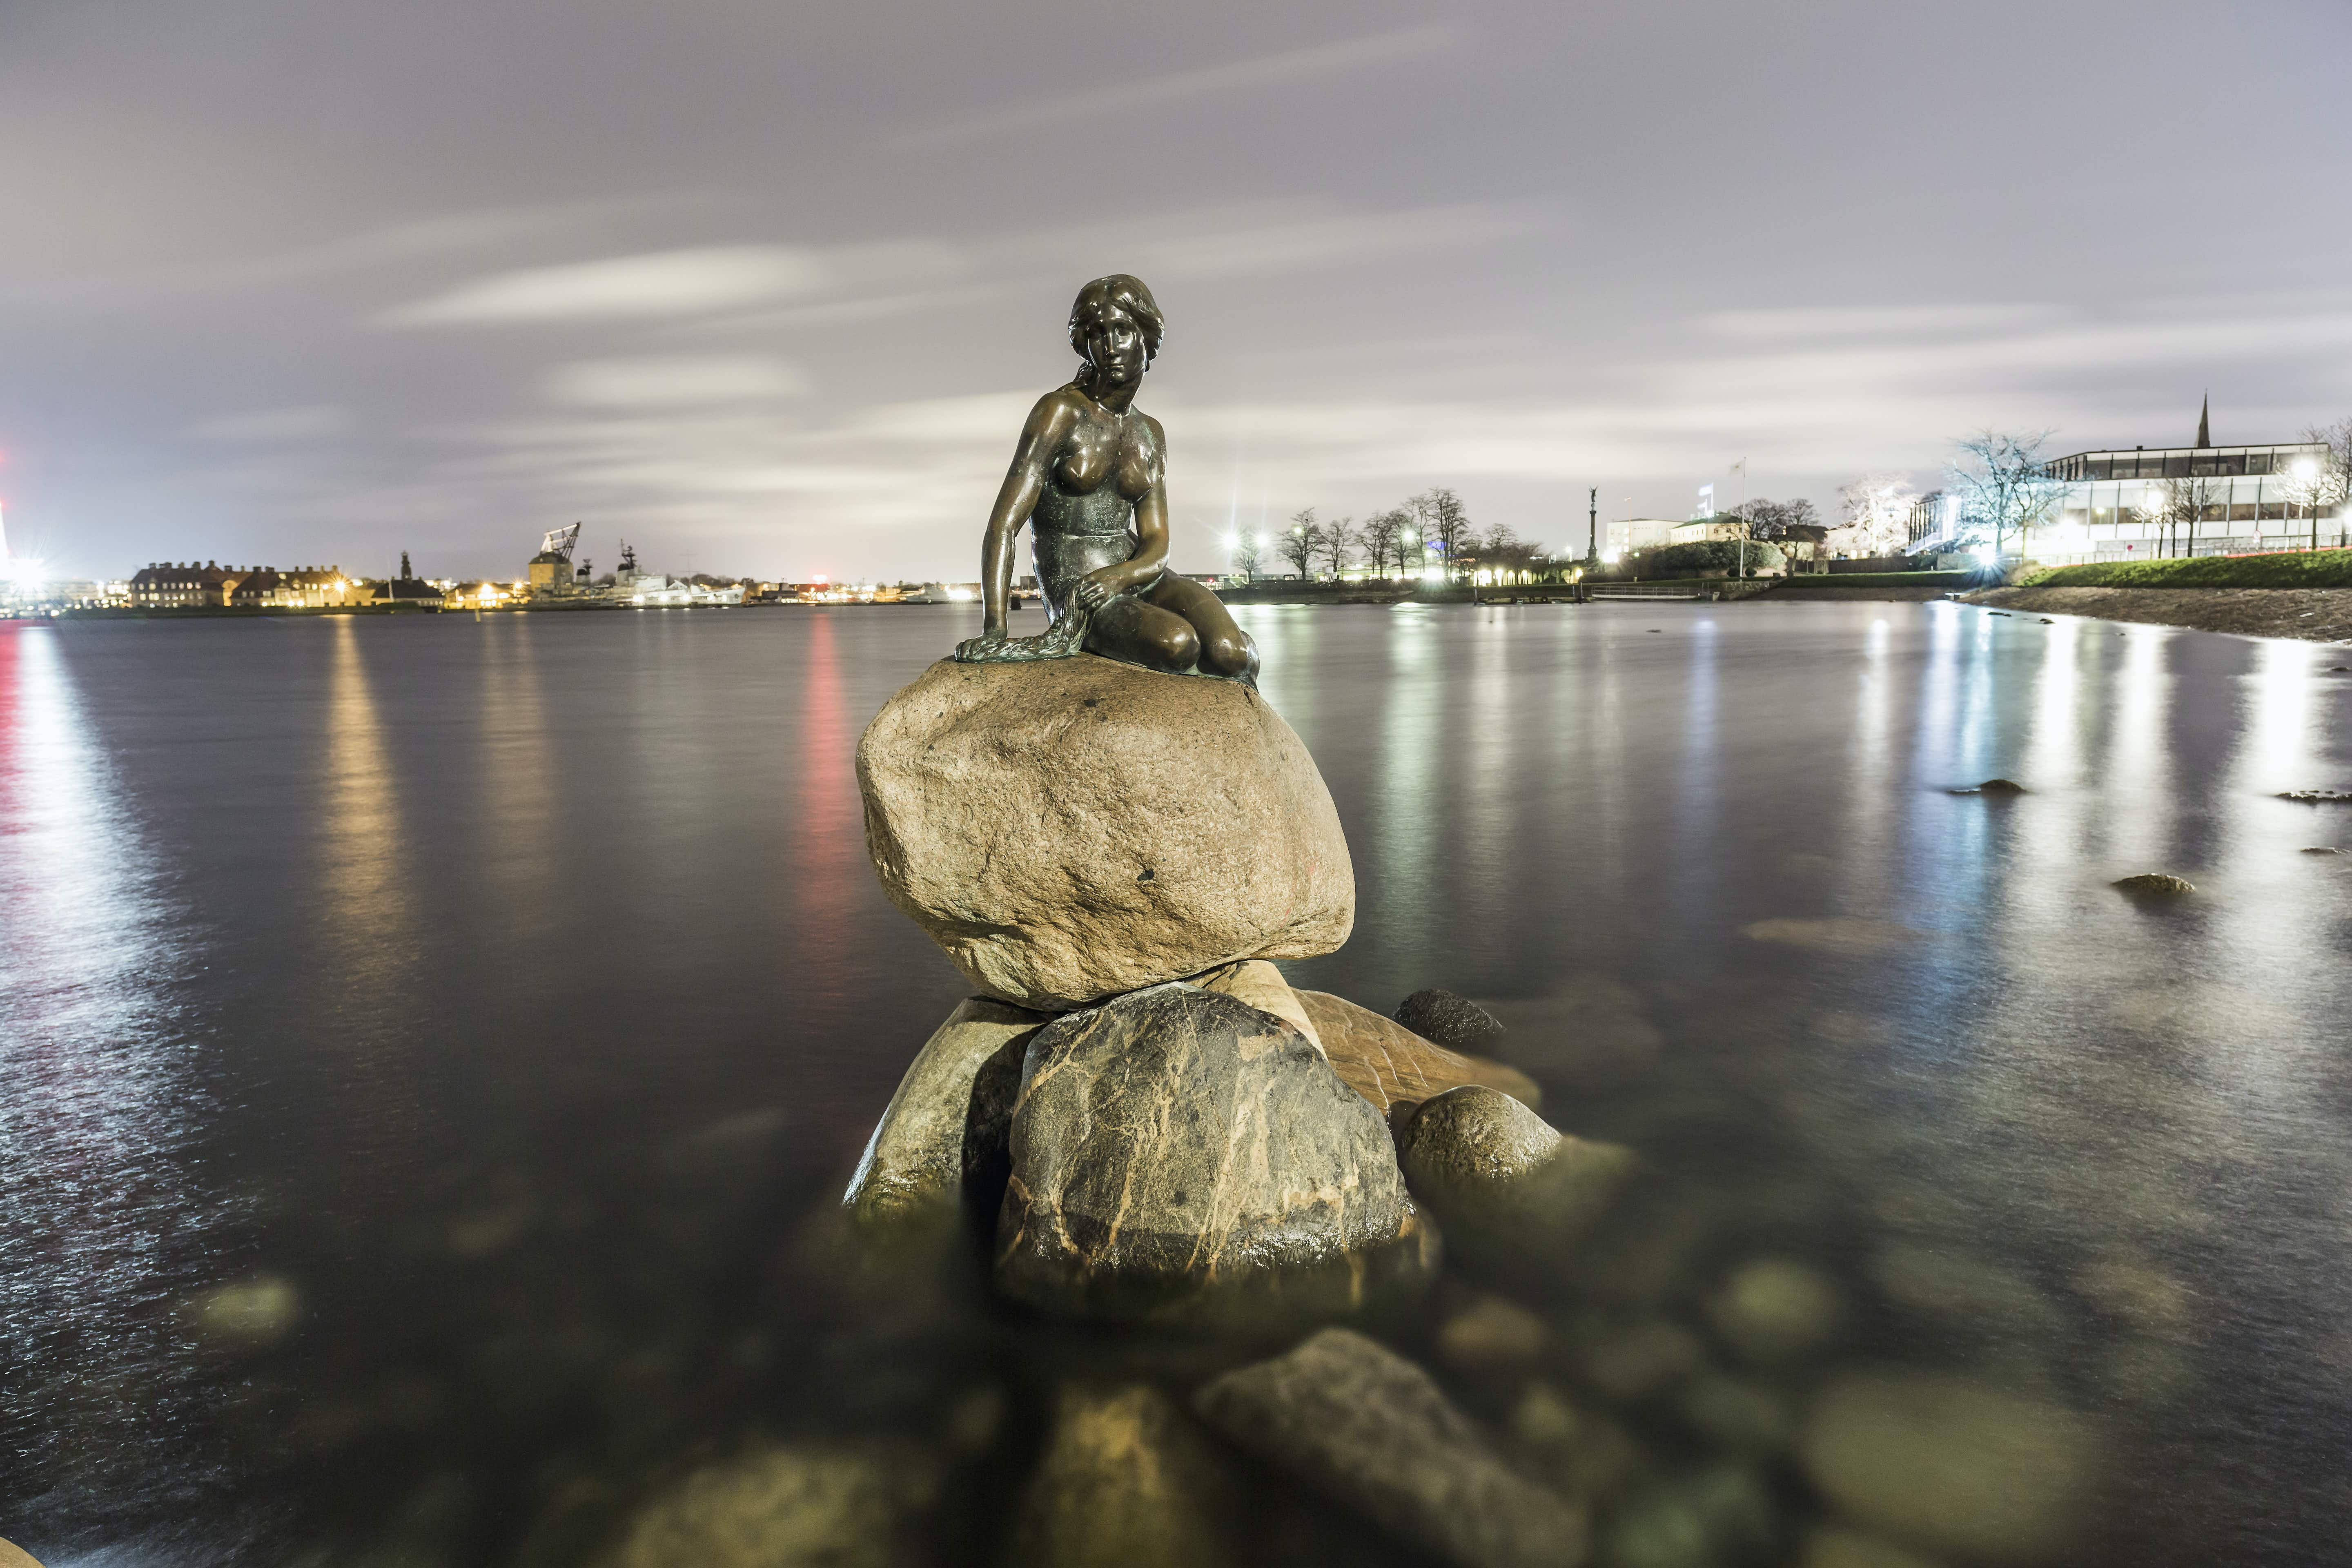 The Little Mermaid sculpture is one of Copenhagen's top highlights © Maremagnym / Getty Images